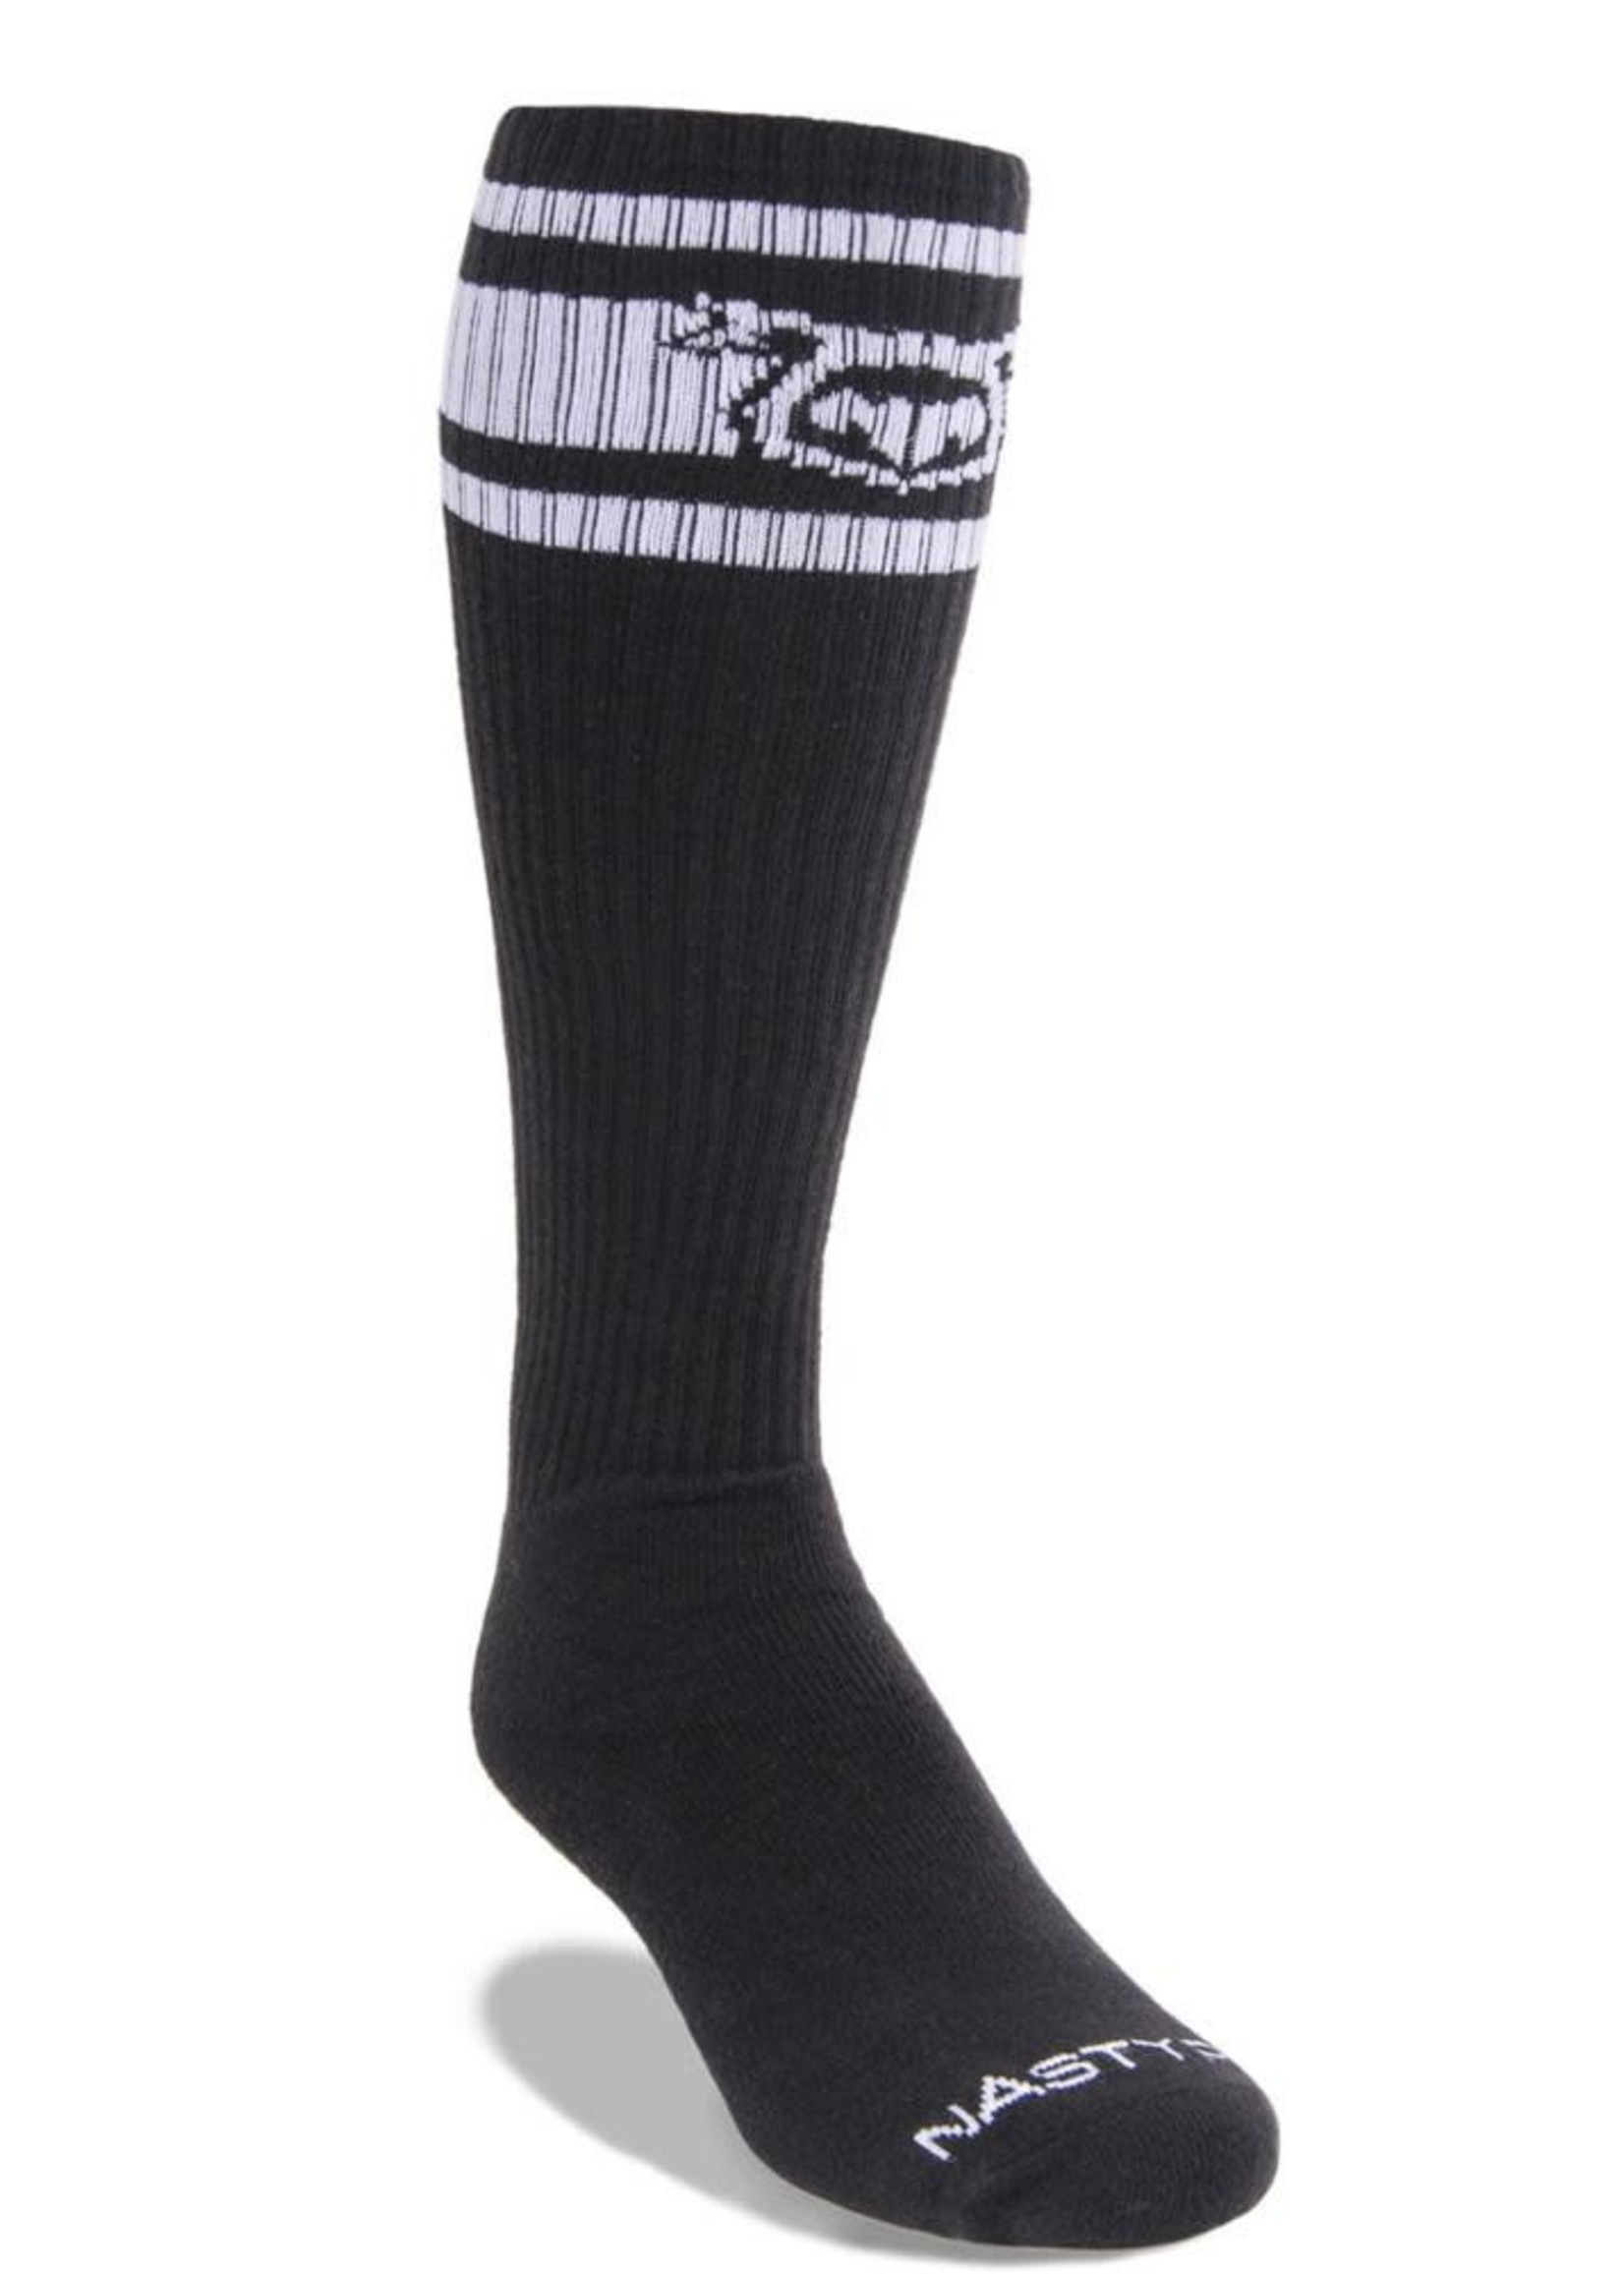 Nasty Pig Nasty Pig Hook'd Up Sport Socks